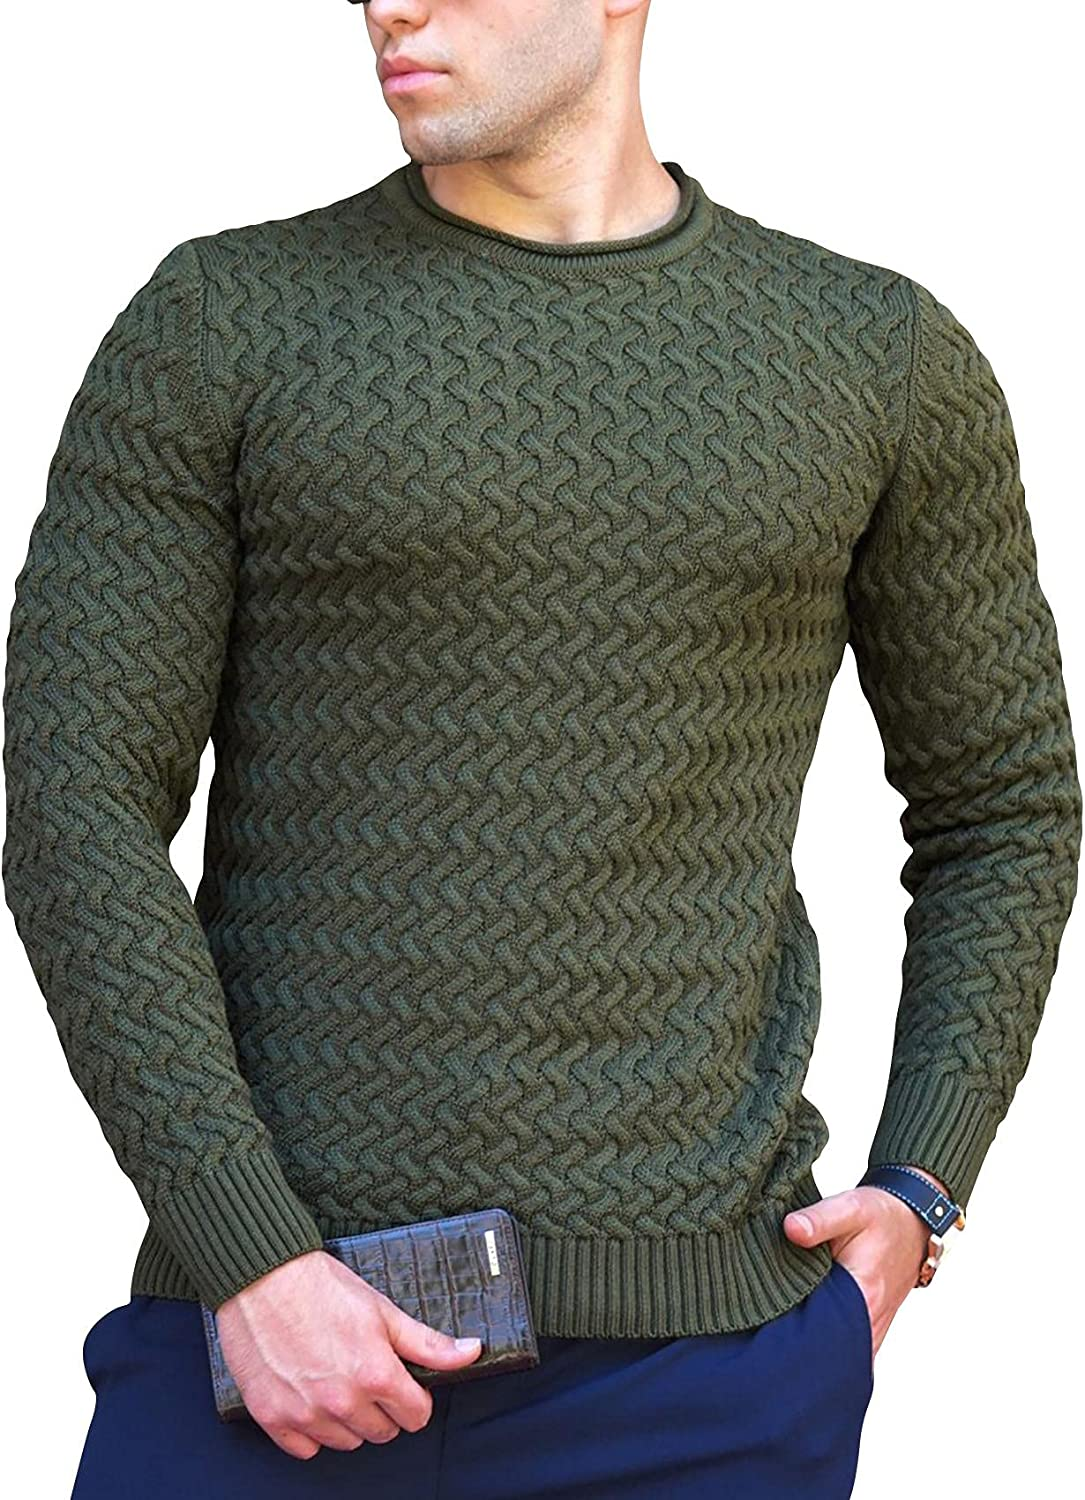 Men's Crewneck Sweater Long Sleeve Cable Twisted Knitted Slim Fit Pullover Sweaters